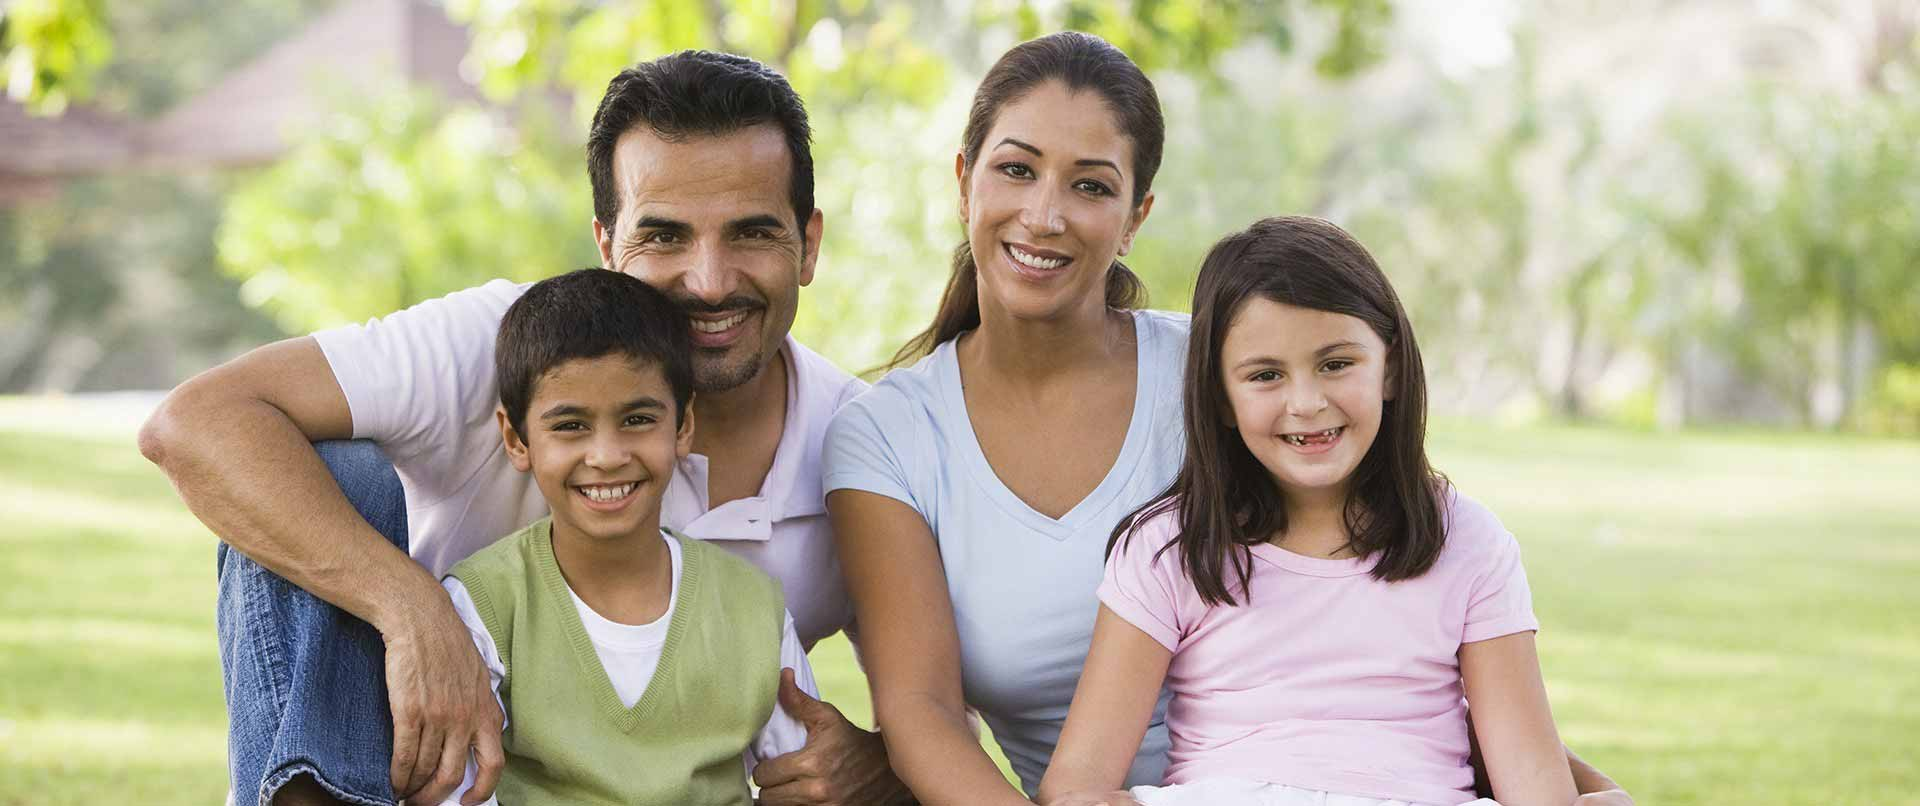 family life adult services mi